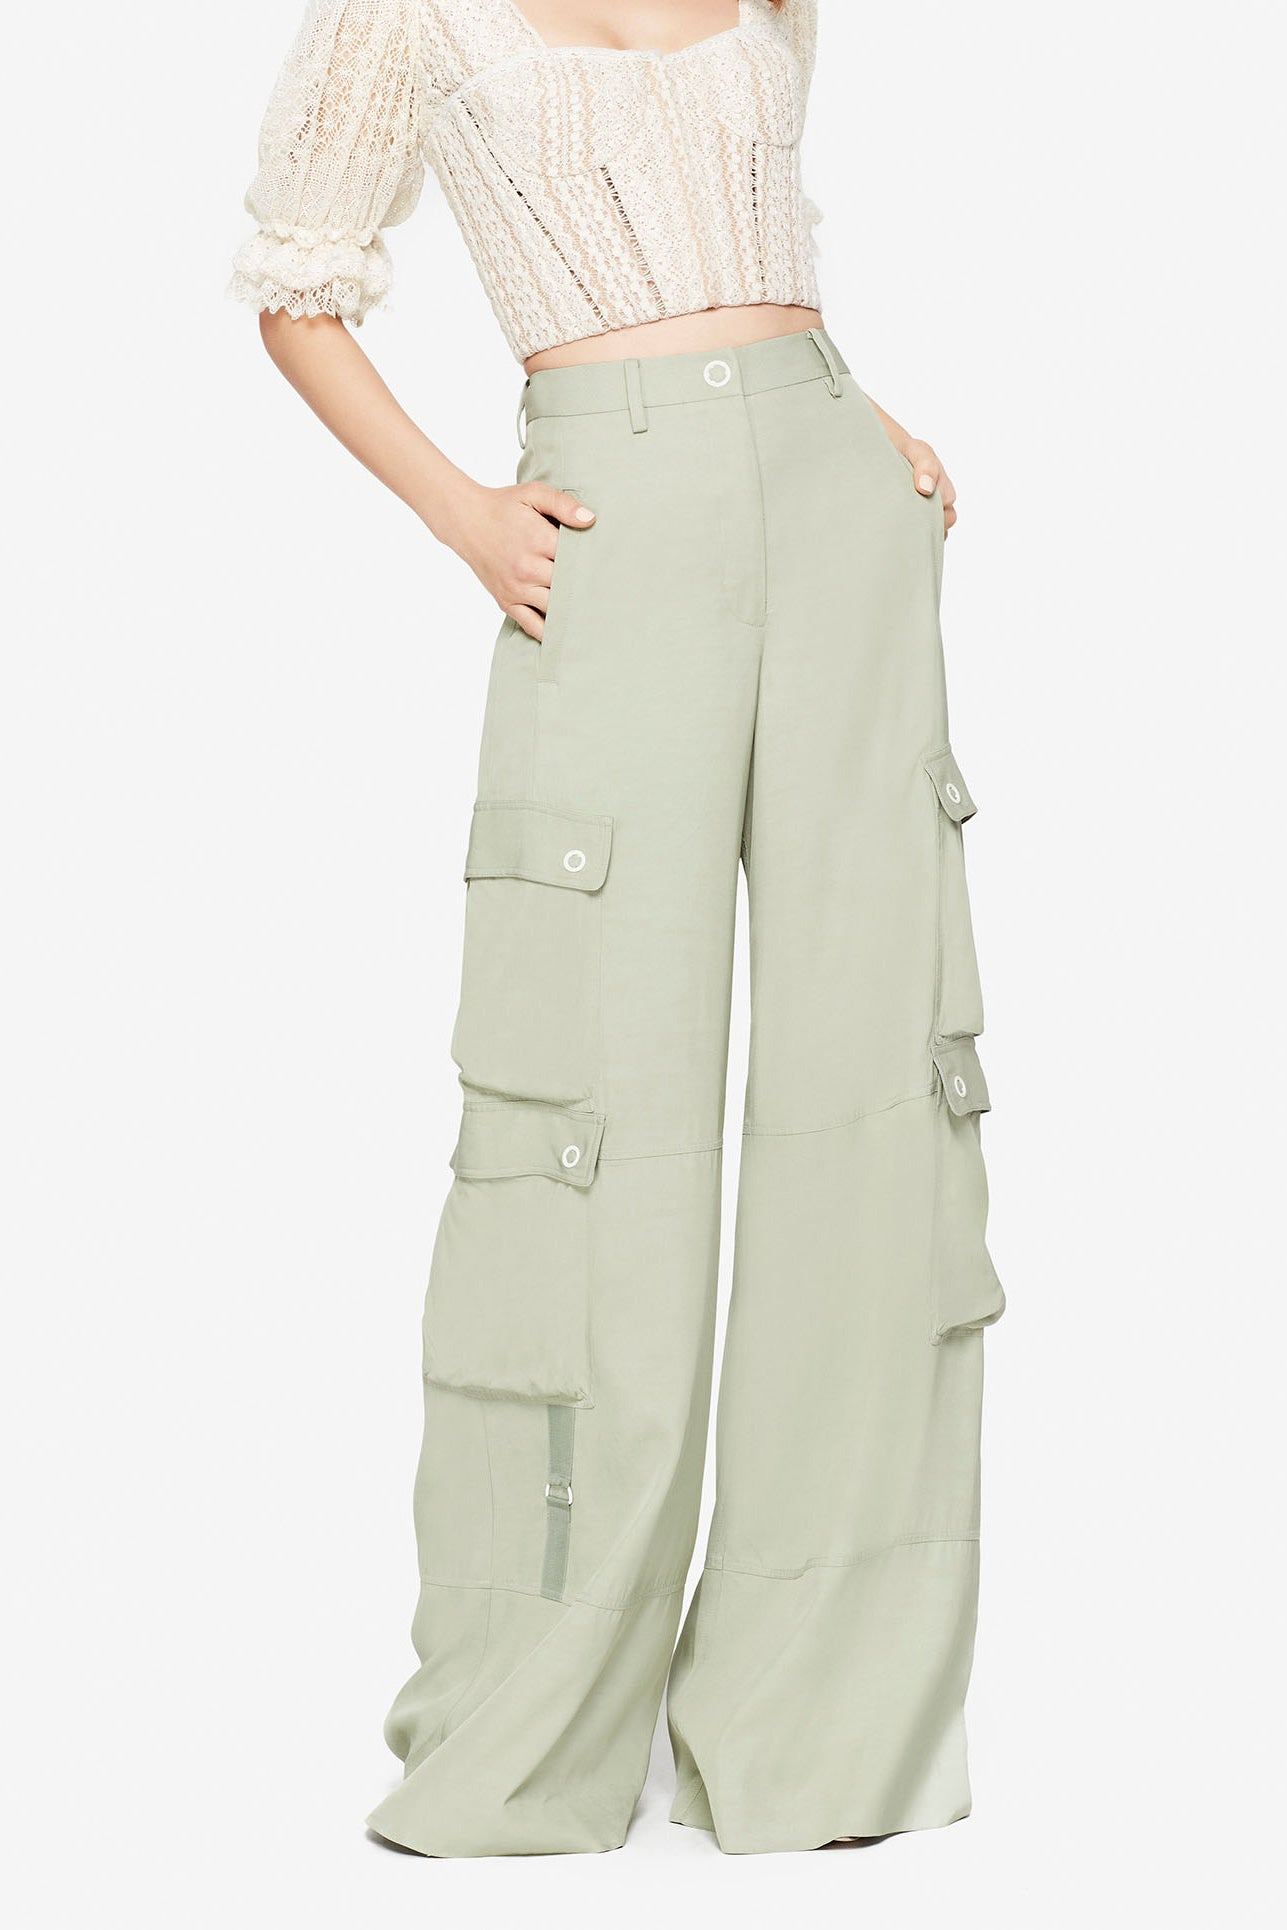 LUX TWILL WIDE LEG CARGO PANT